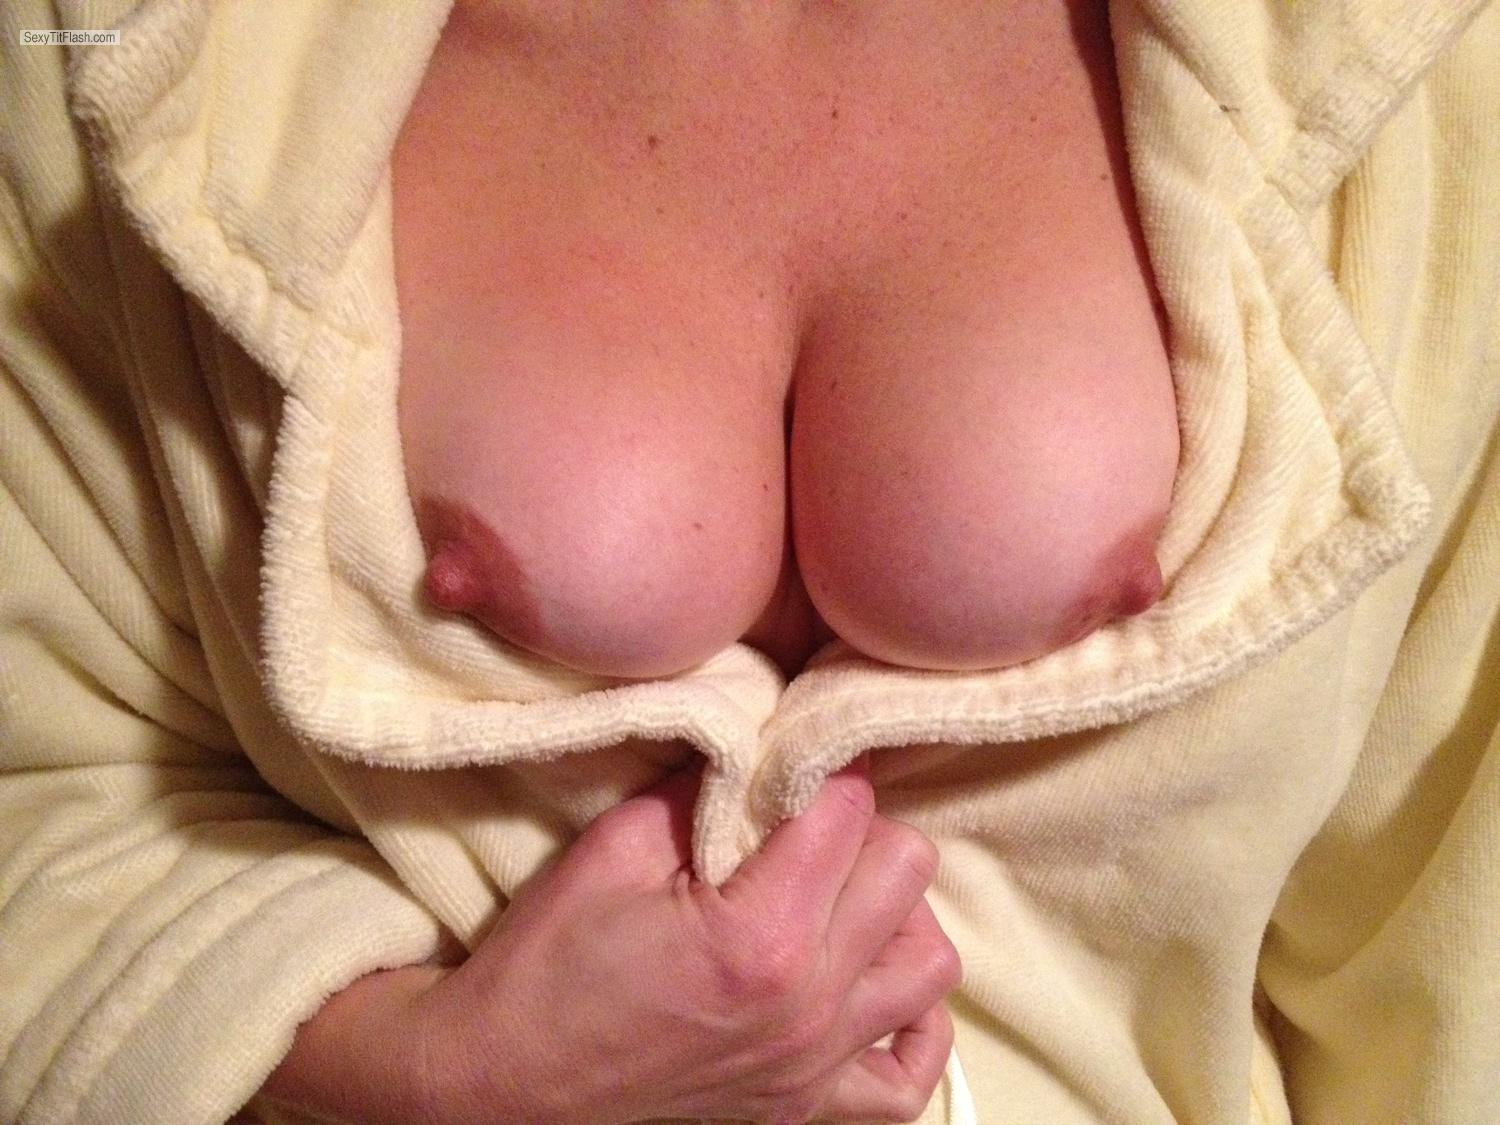 Tit Flash: Medium Tits By IPhone - My Milf from United States